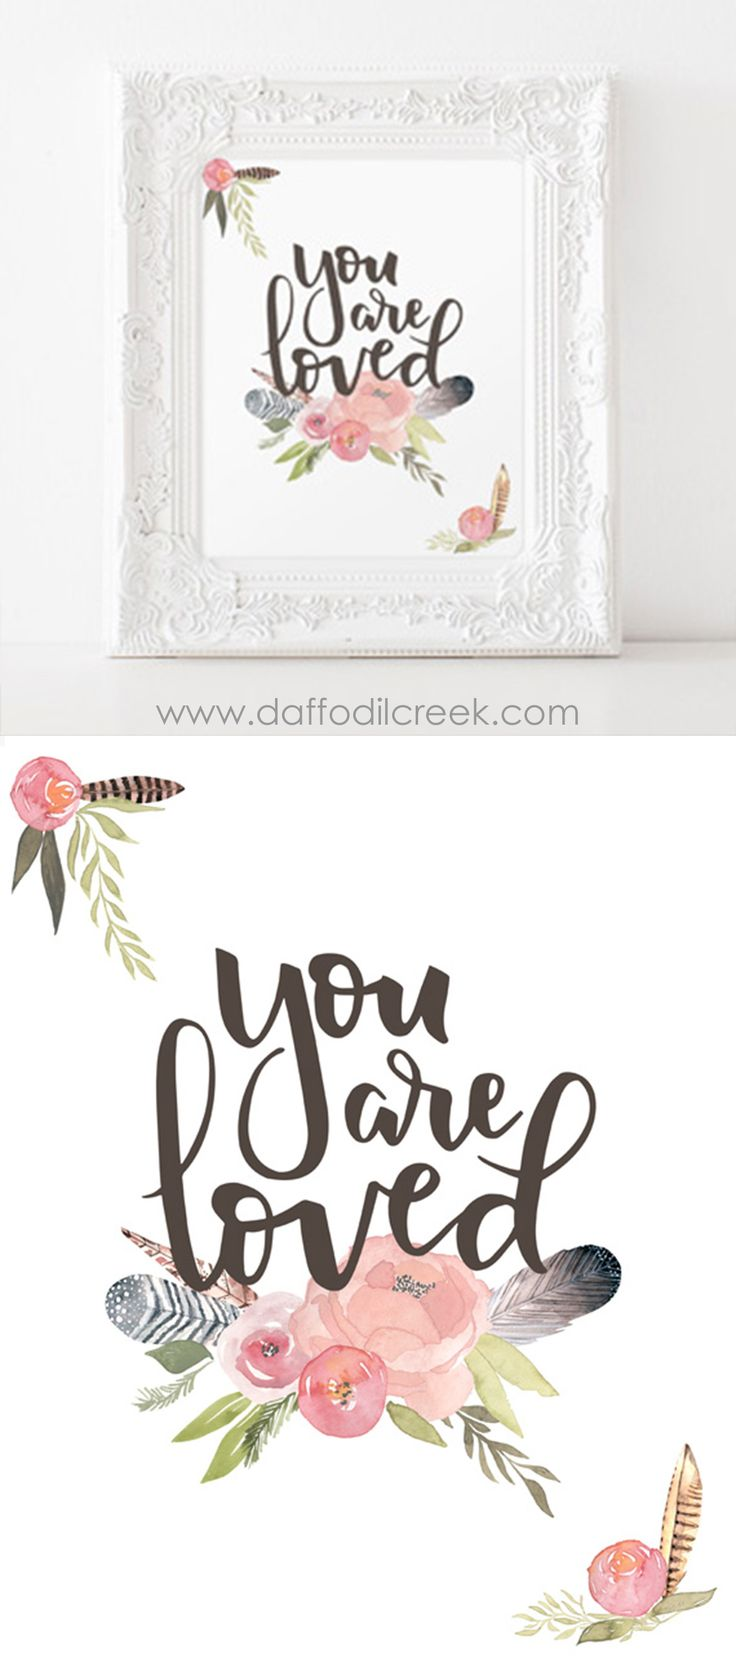 """Spread some love with this sentimental and sweet nursery print!The phrase """"You are loved"""" is hand lettered and paired with watercolor flowers and feathers. So sweet for a girls room or nursery!"""